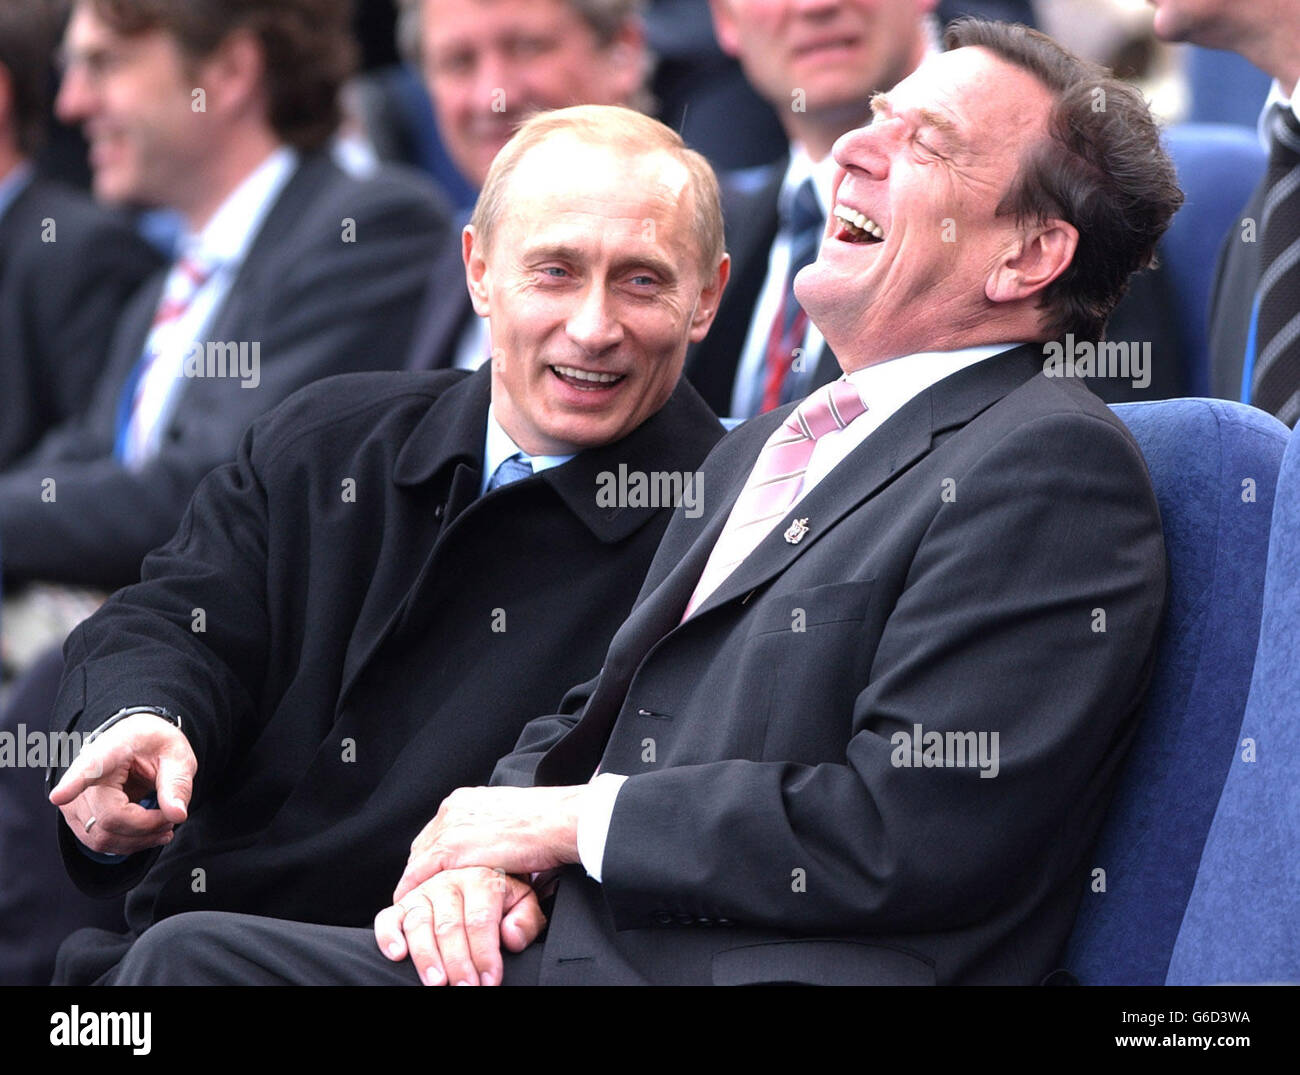 Image result for New Abwehr - Skripal - Yanukovych - (possibly Putin) - Oligarchs - Manafort - Trump